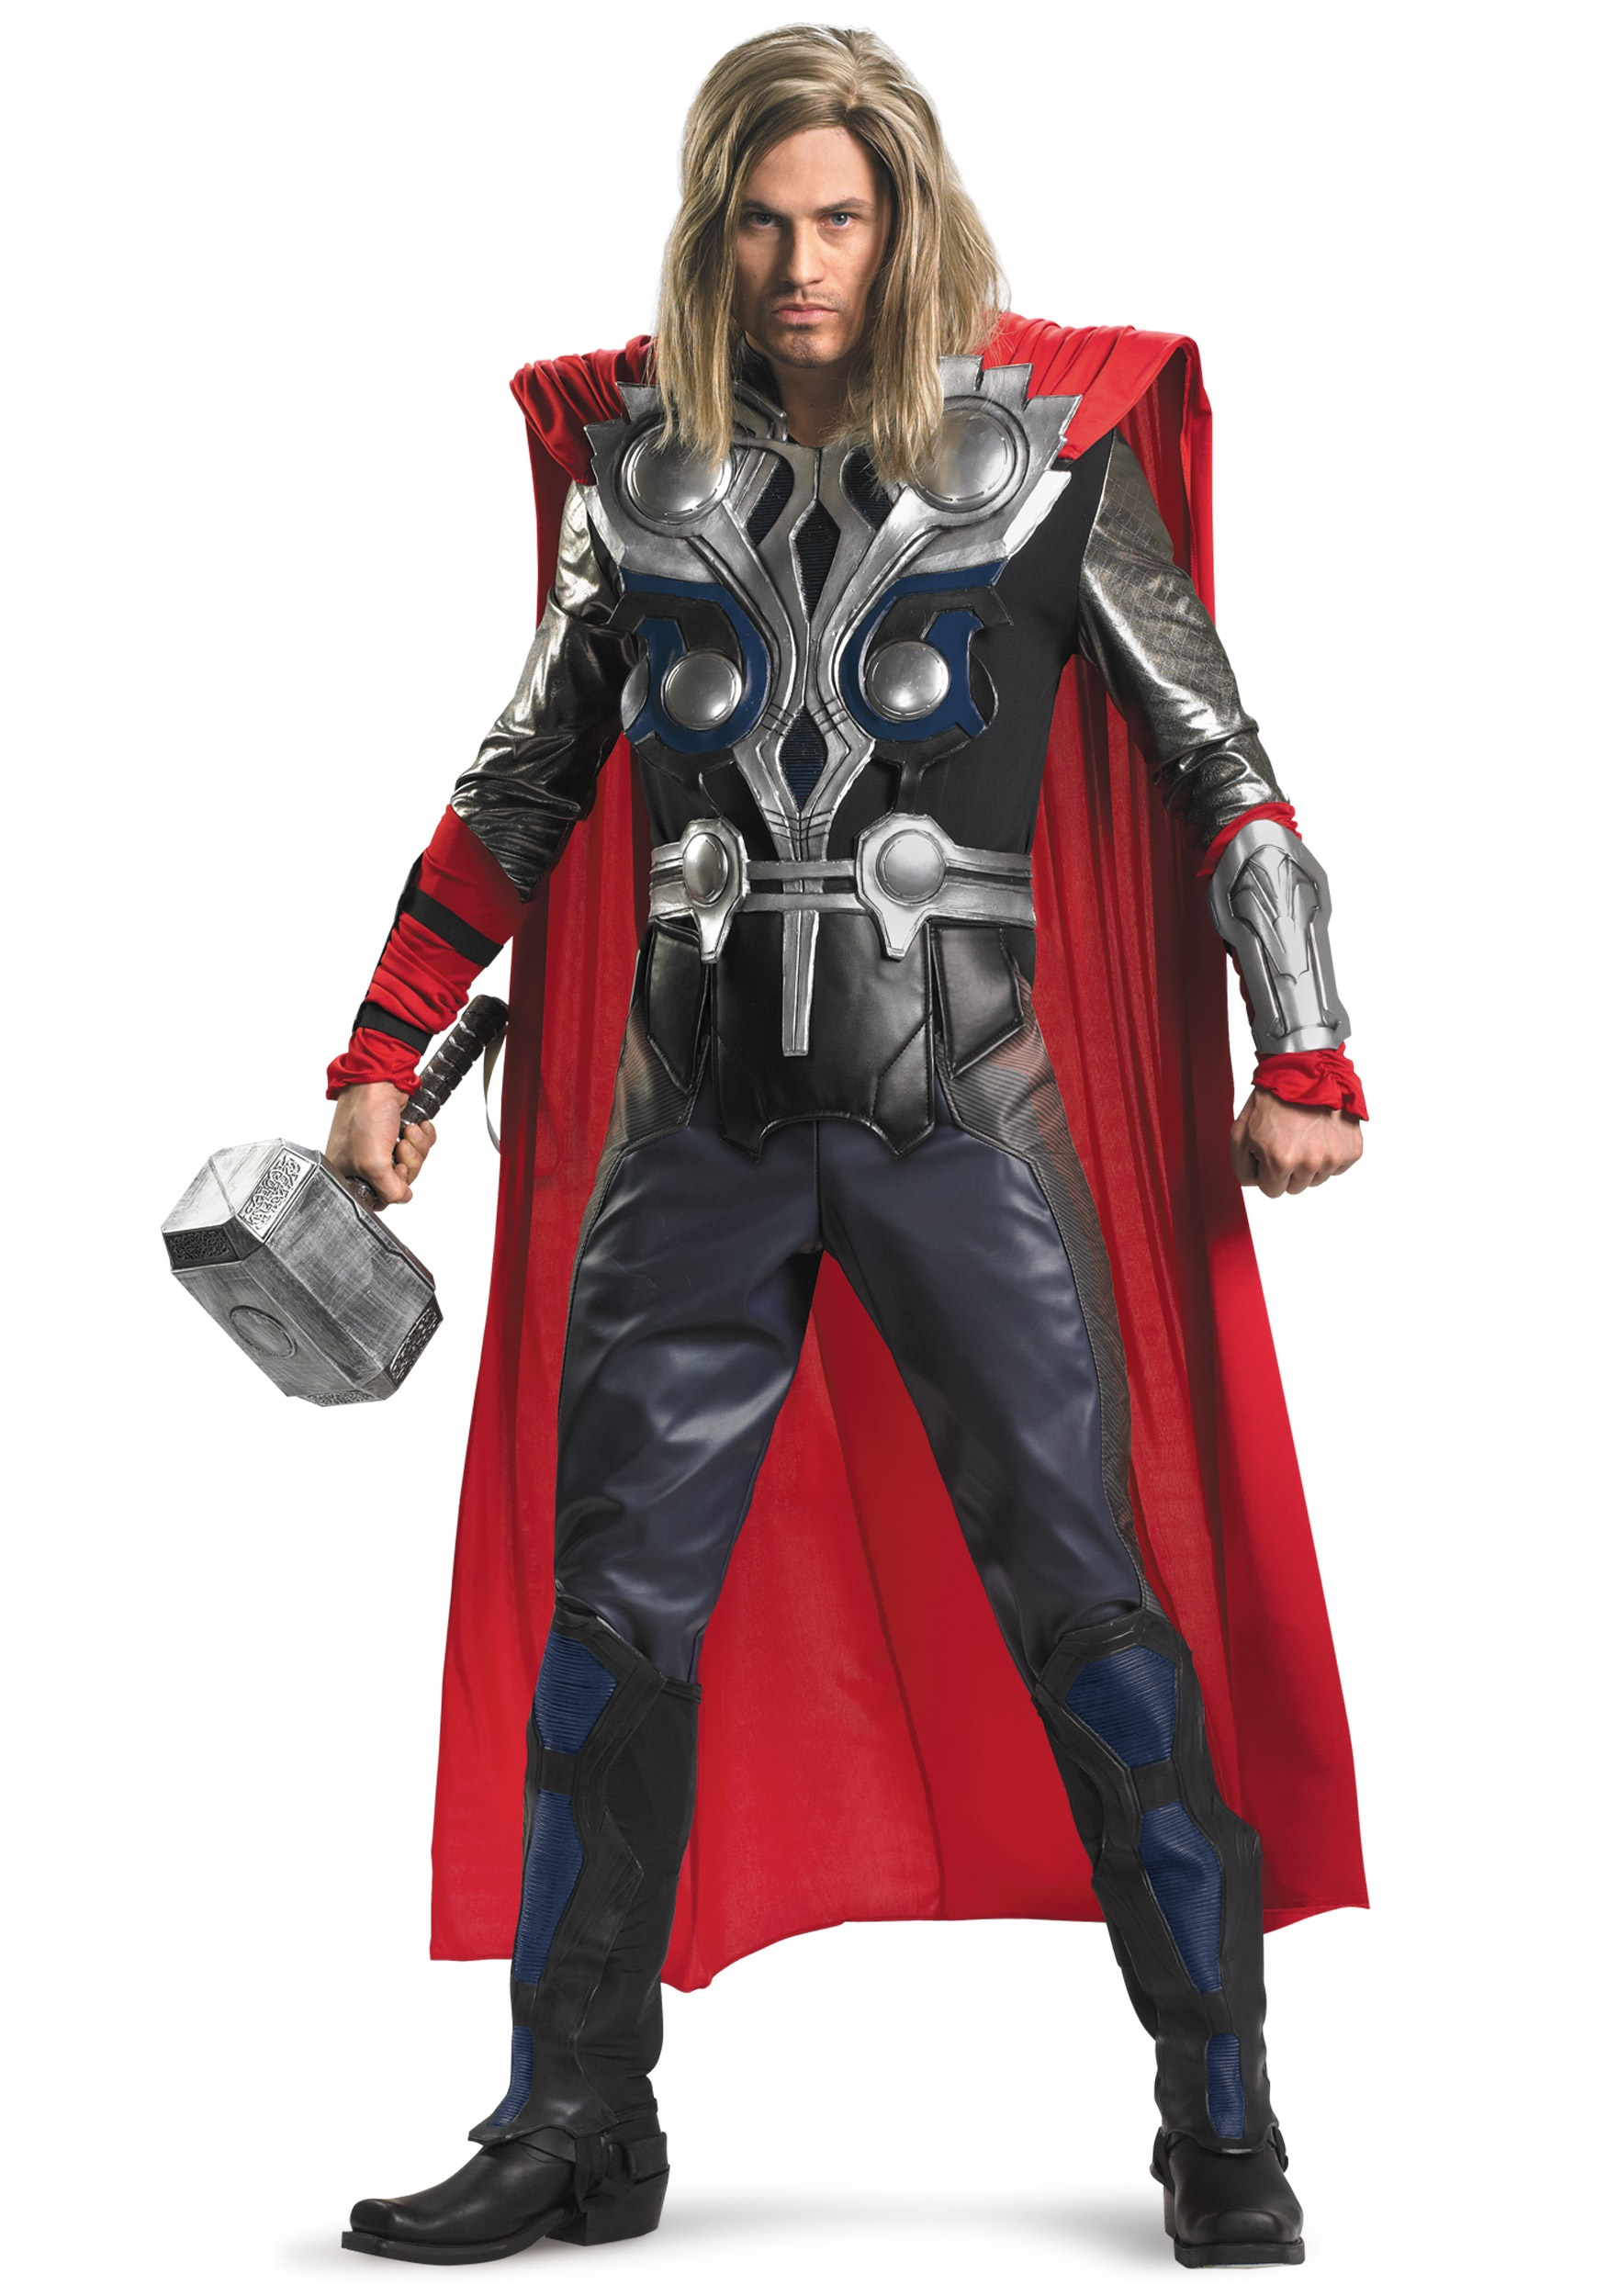 Plus Size Avengers Replica Thor Costume  sc 1 st  Halloween Costumes & Plus Size Avengers Replica Thor Costume - Halloween Costumes